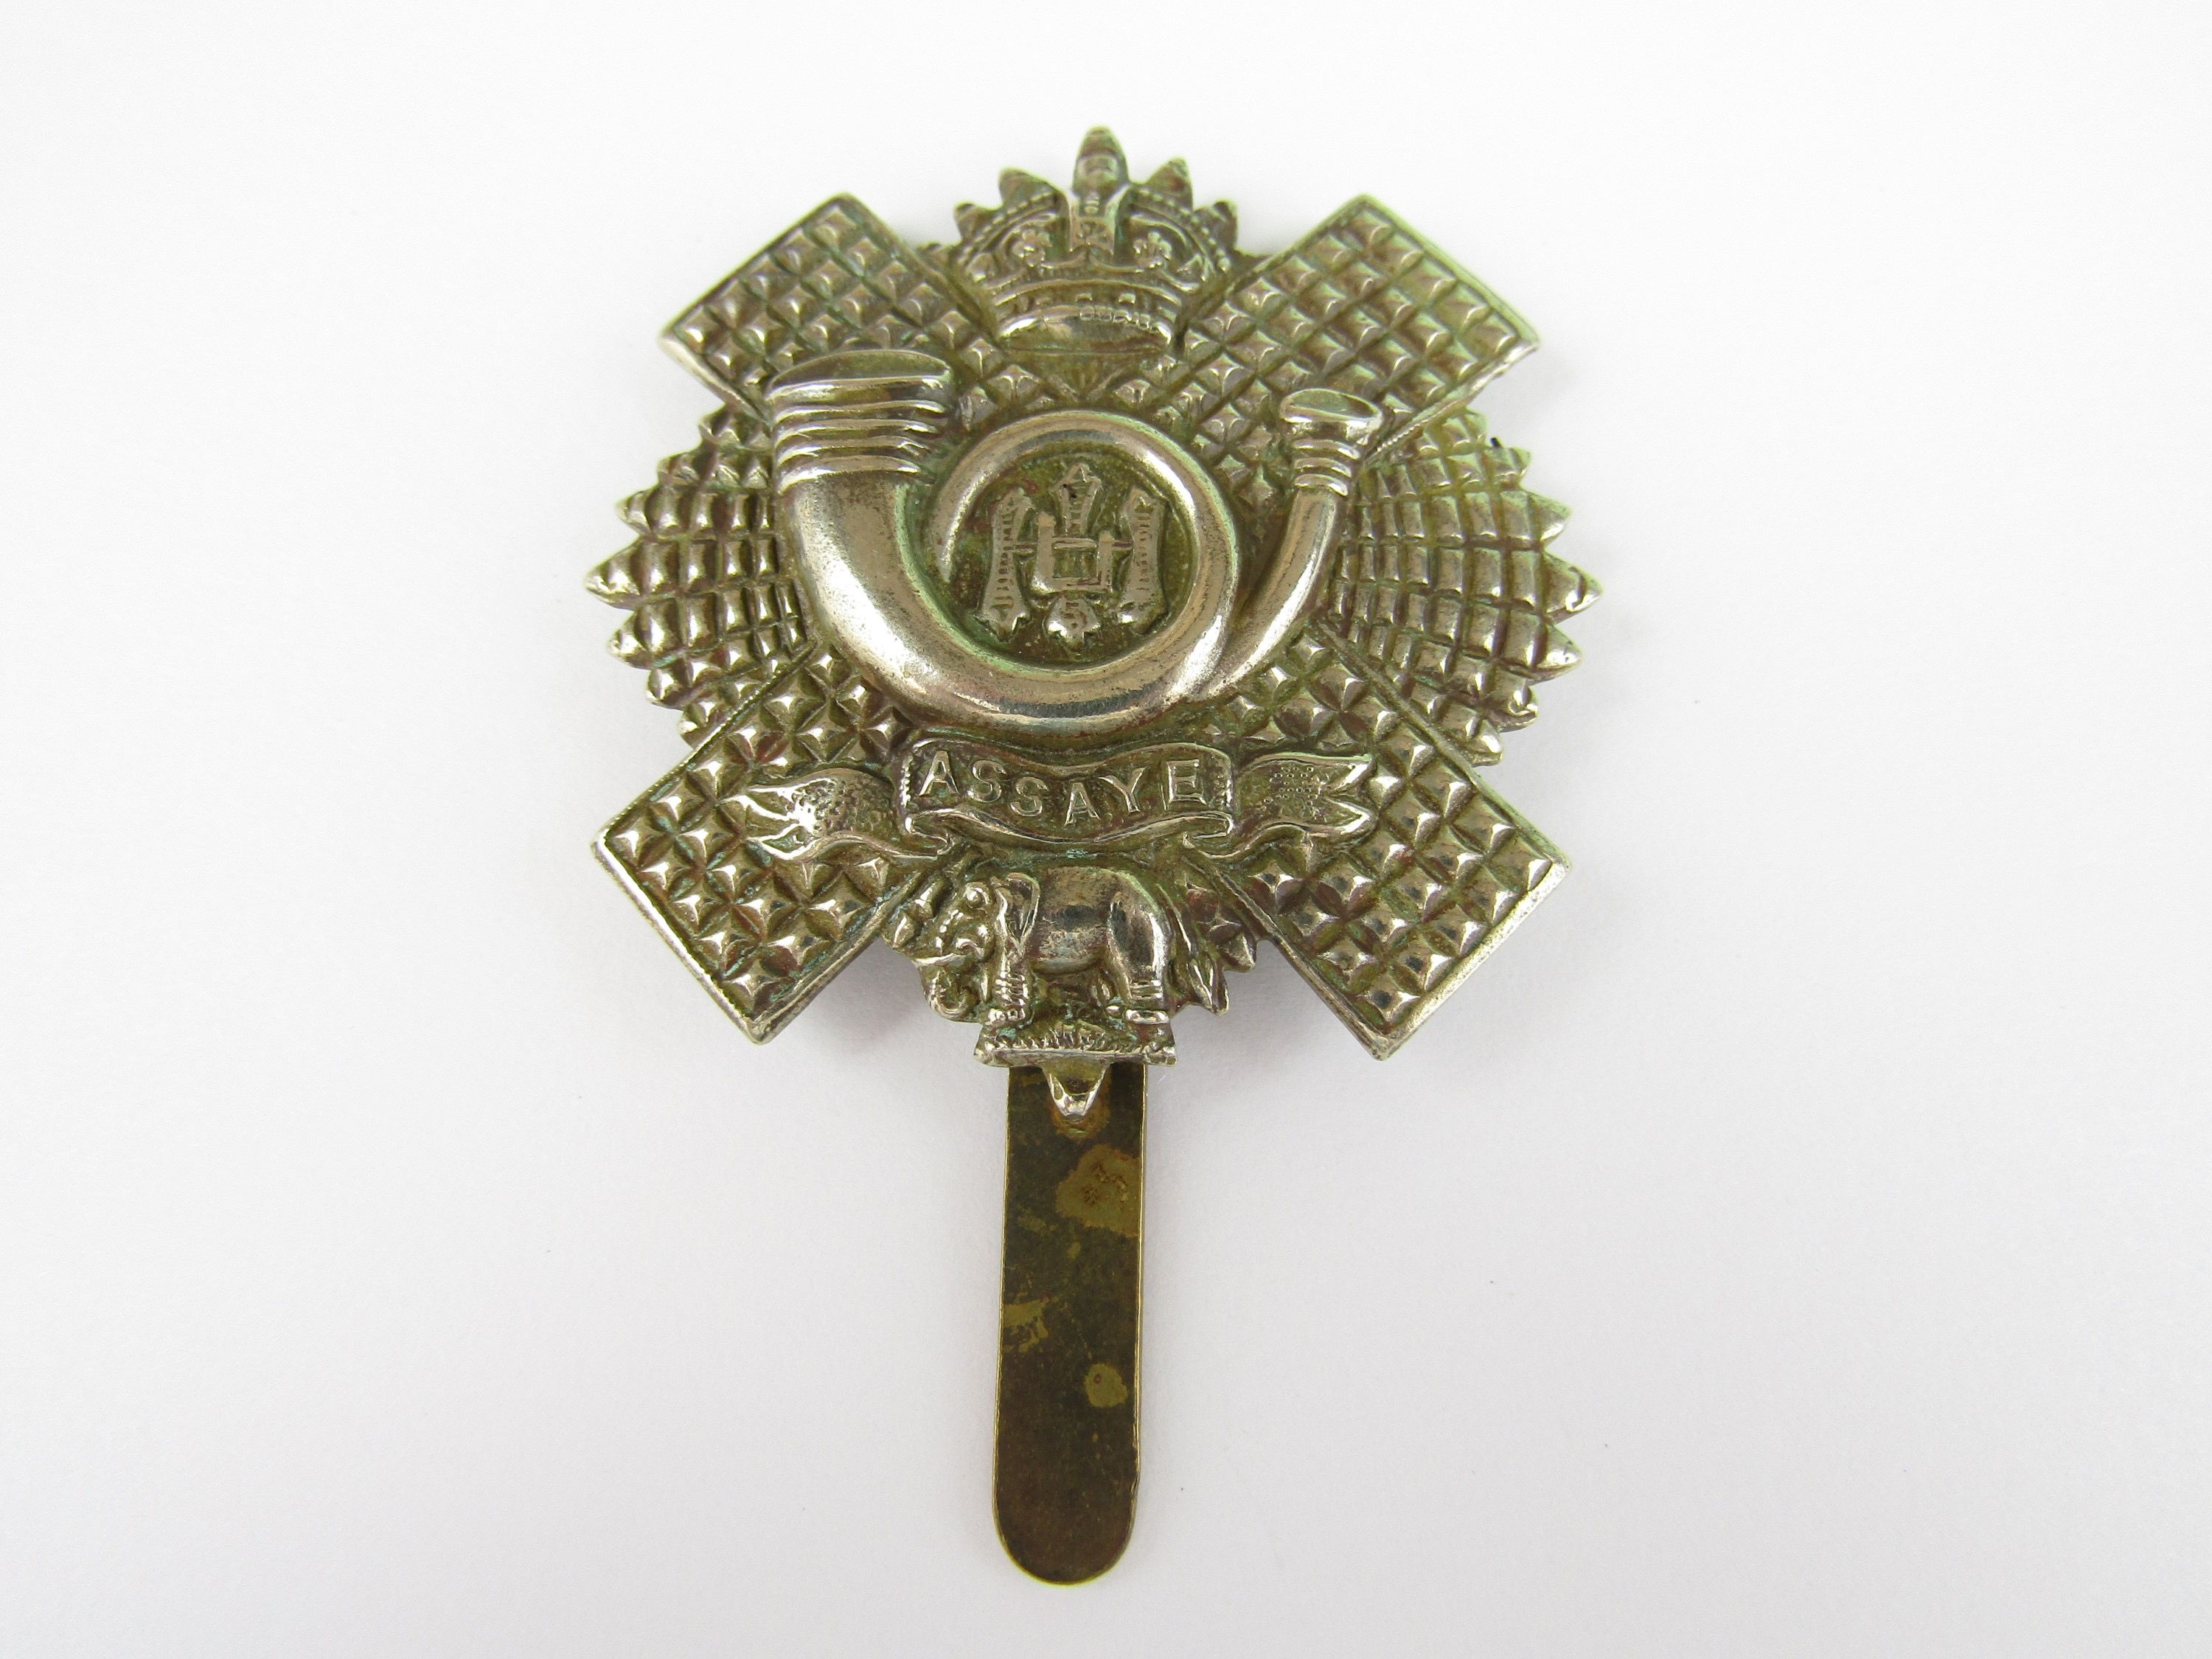 Lot 26 - An HLI other rank's pagri badge bearing Gaunt London plaque